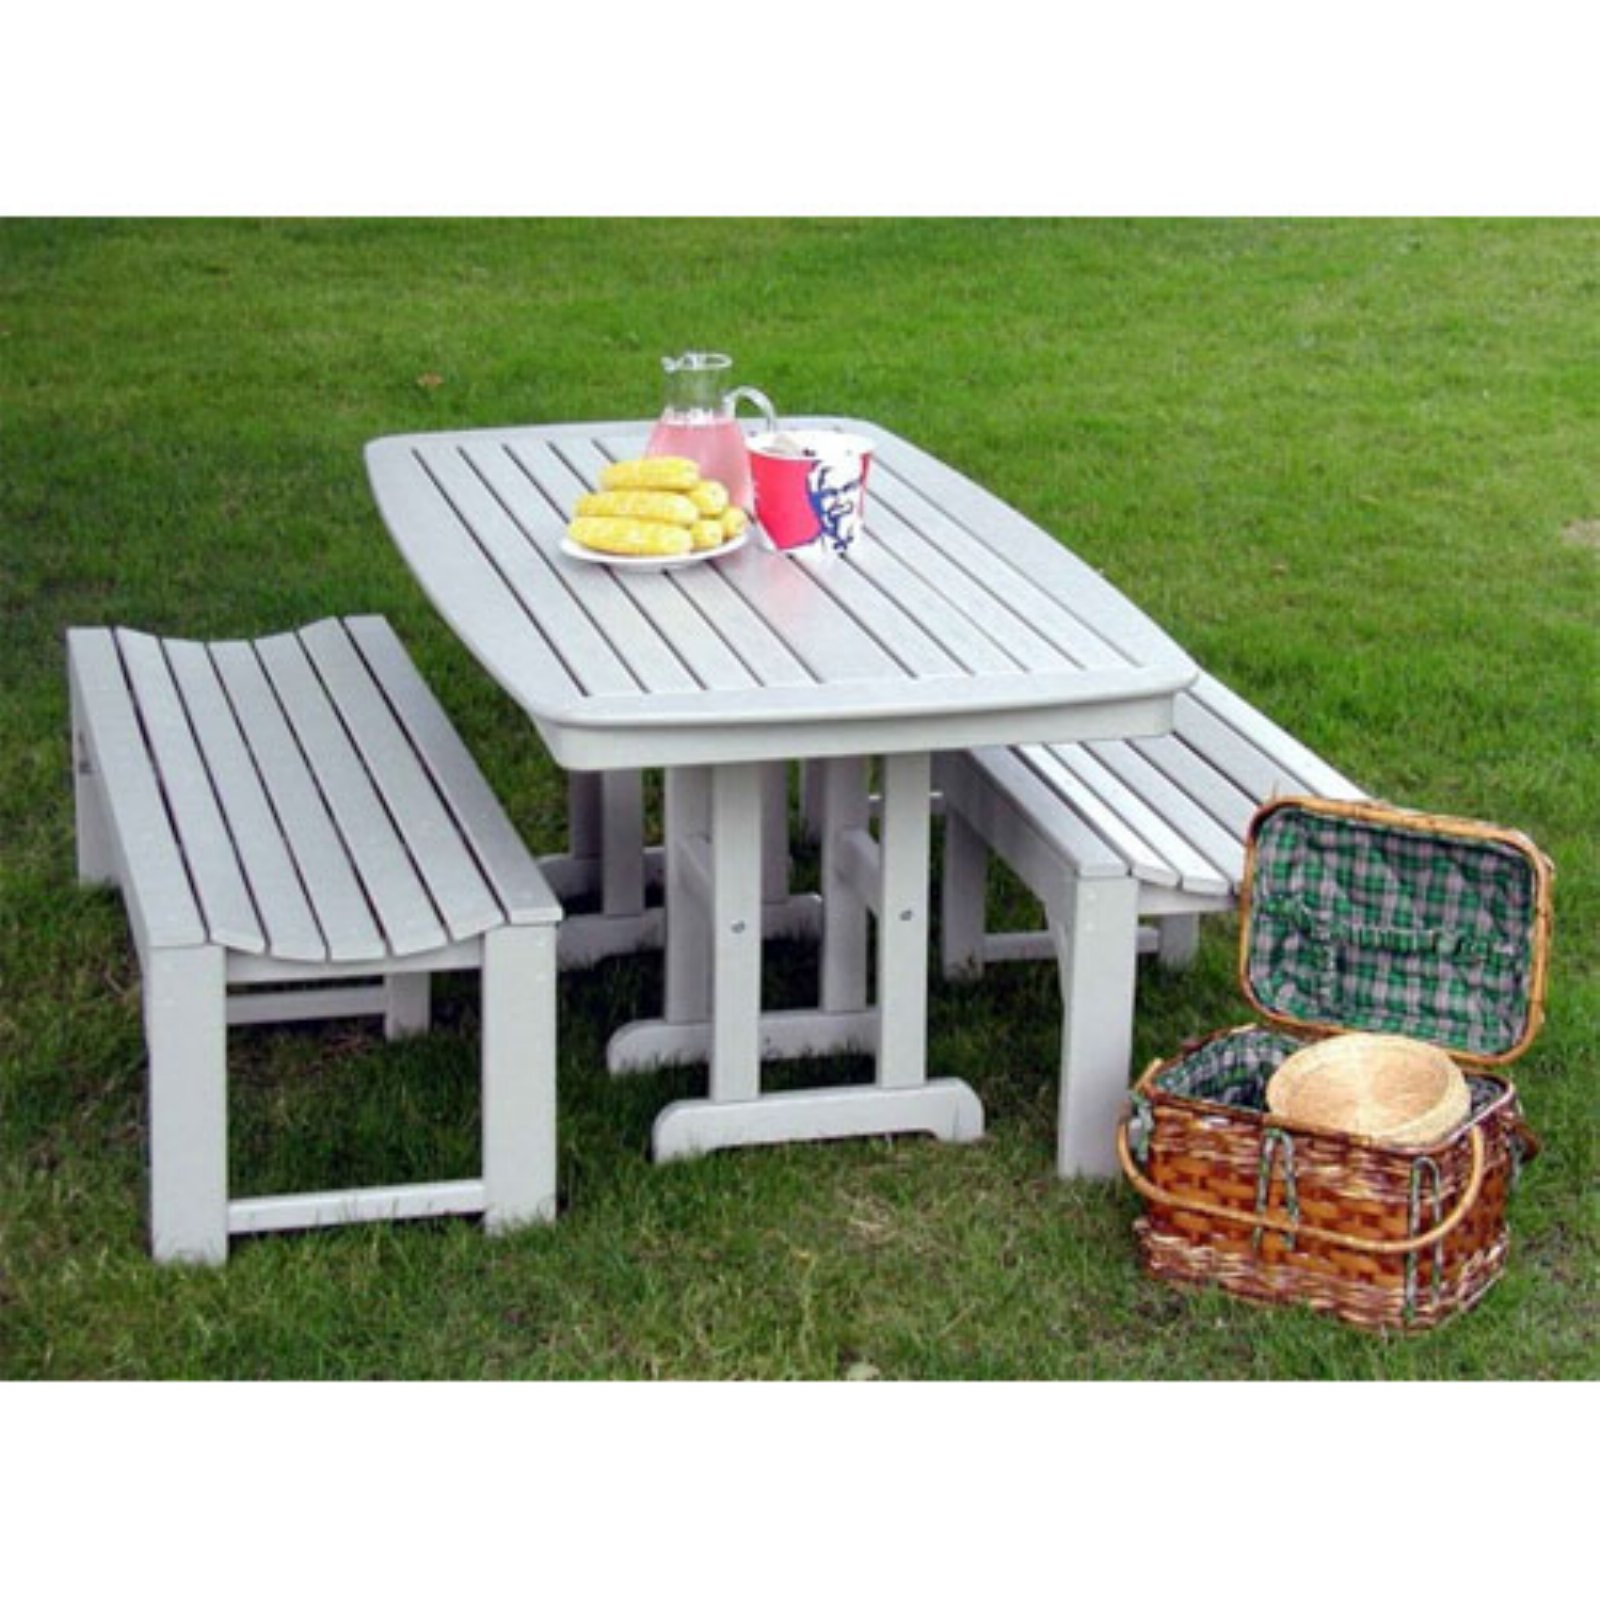 POLYWOOD® Nautical 3 Pc. Recycled Plastic Outdoor Bench Dining Set